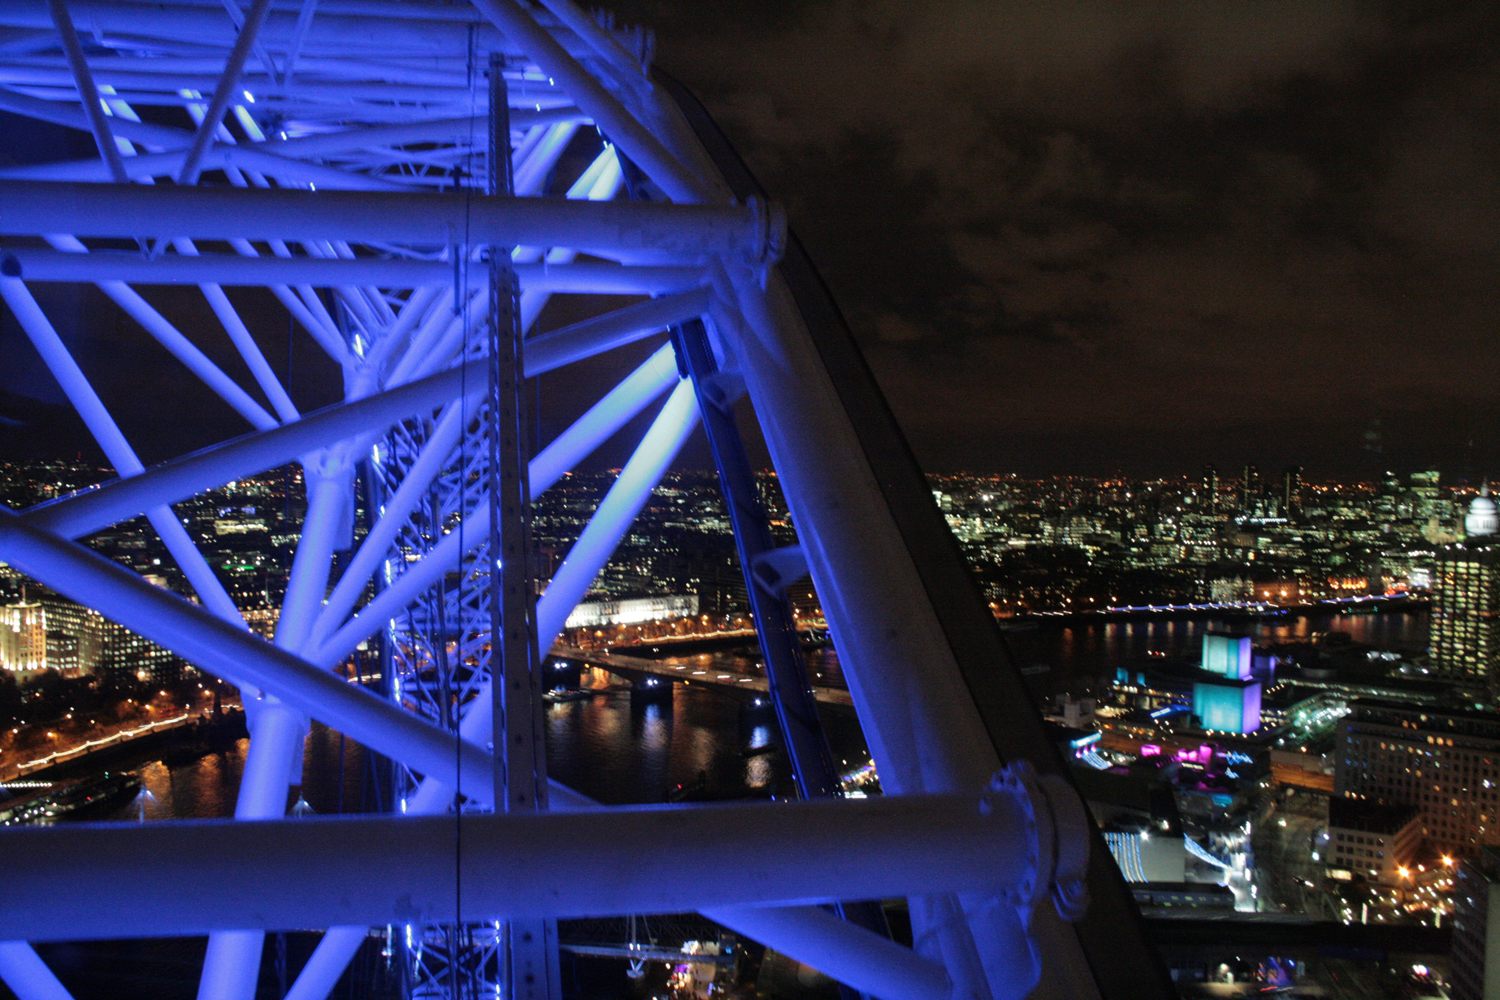 125 View From London Eye. 10.12.2012